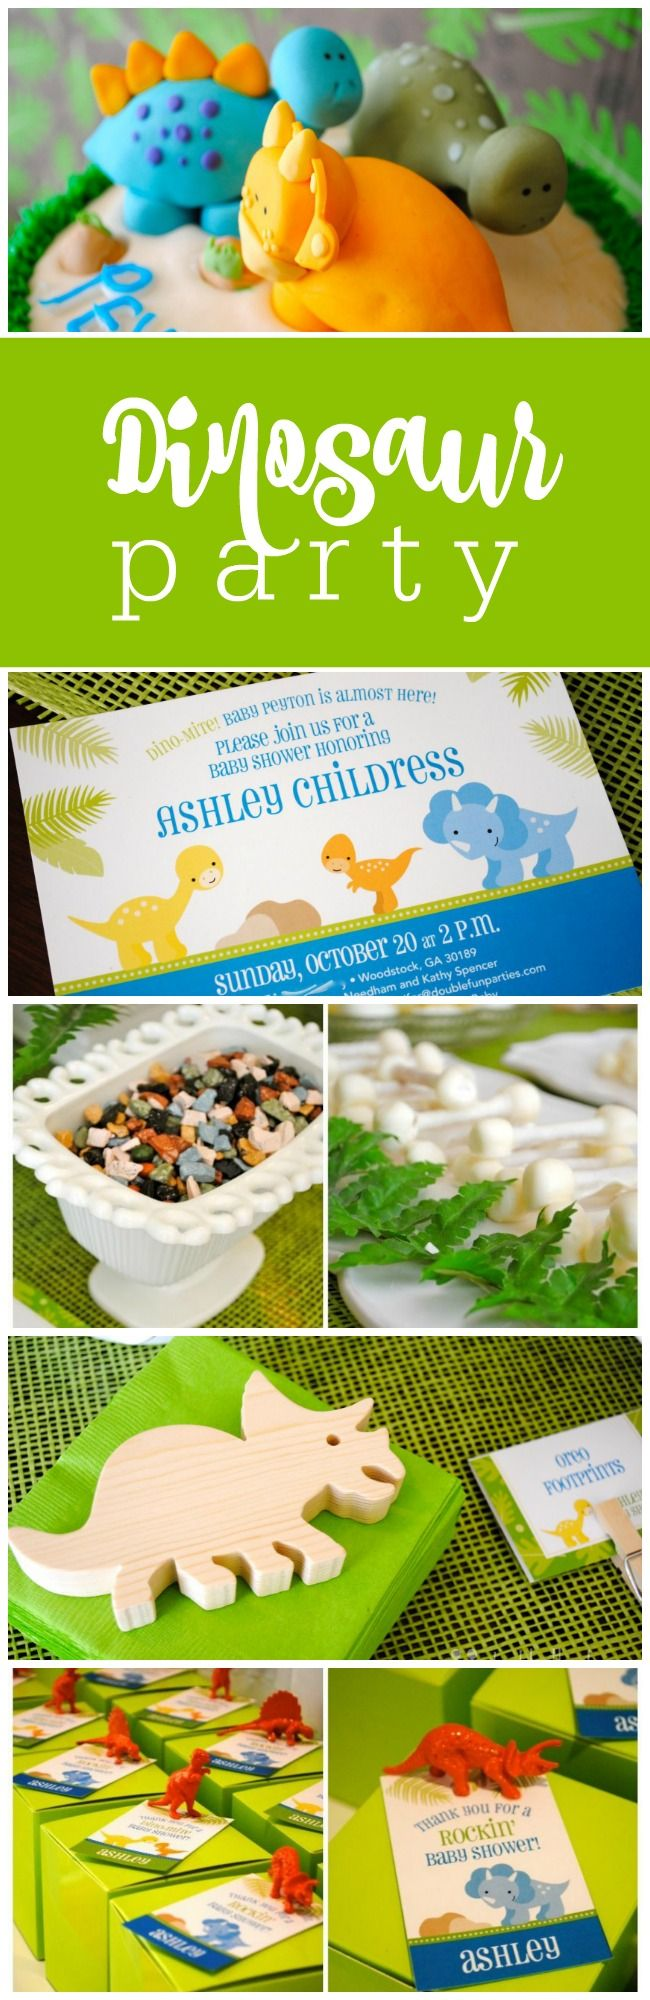 How to plan a dinosaur party by The Party Teacher | http://thepartyteacher.com/2013/10/22/our-parties-dinosaur-baby-shower-and-how-i-planned-it/